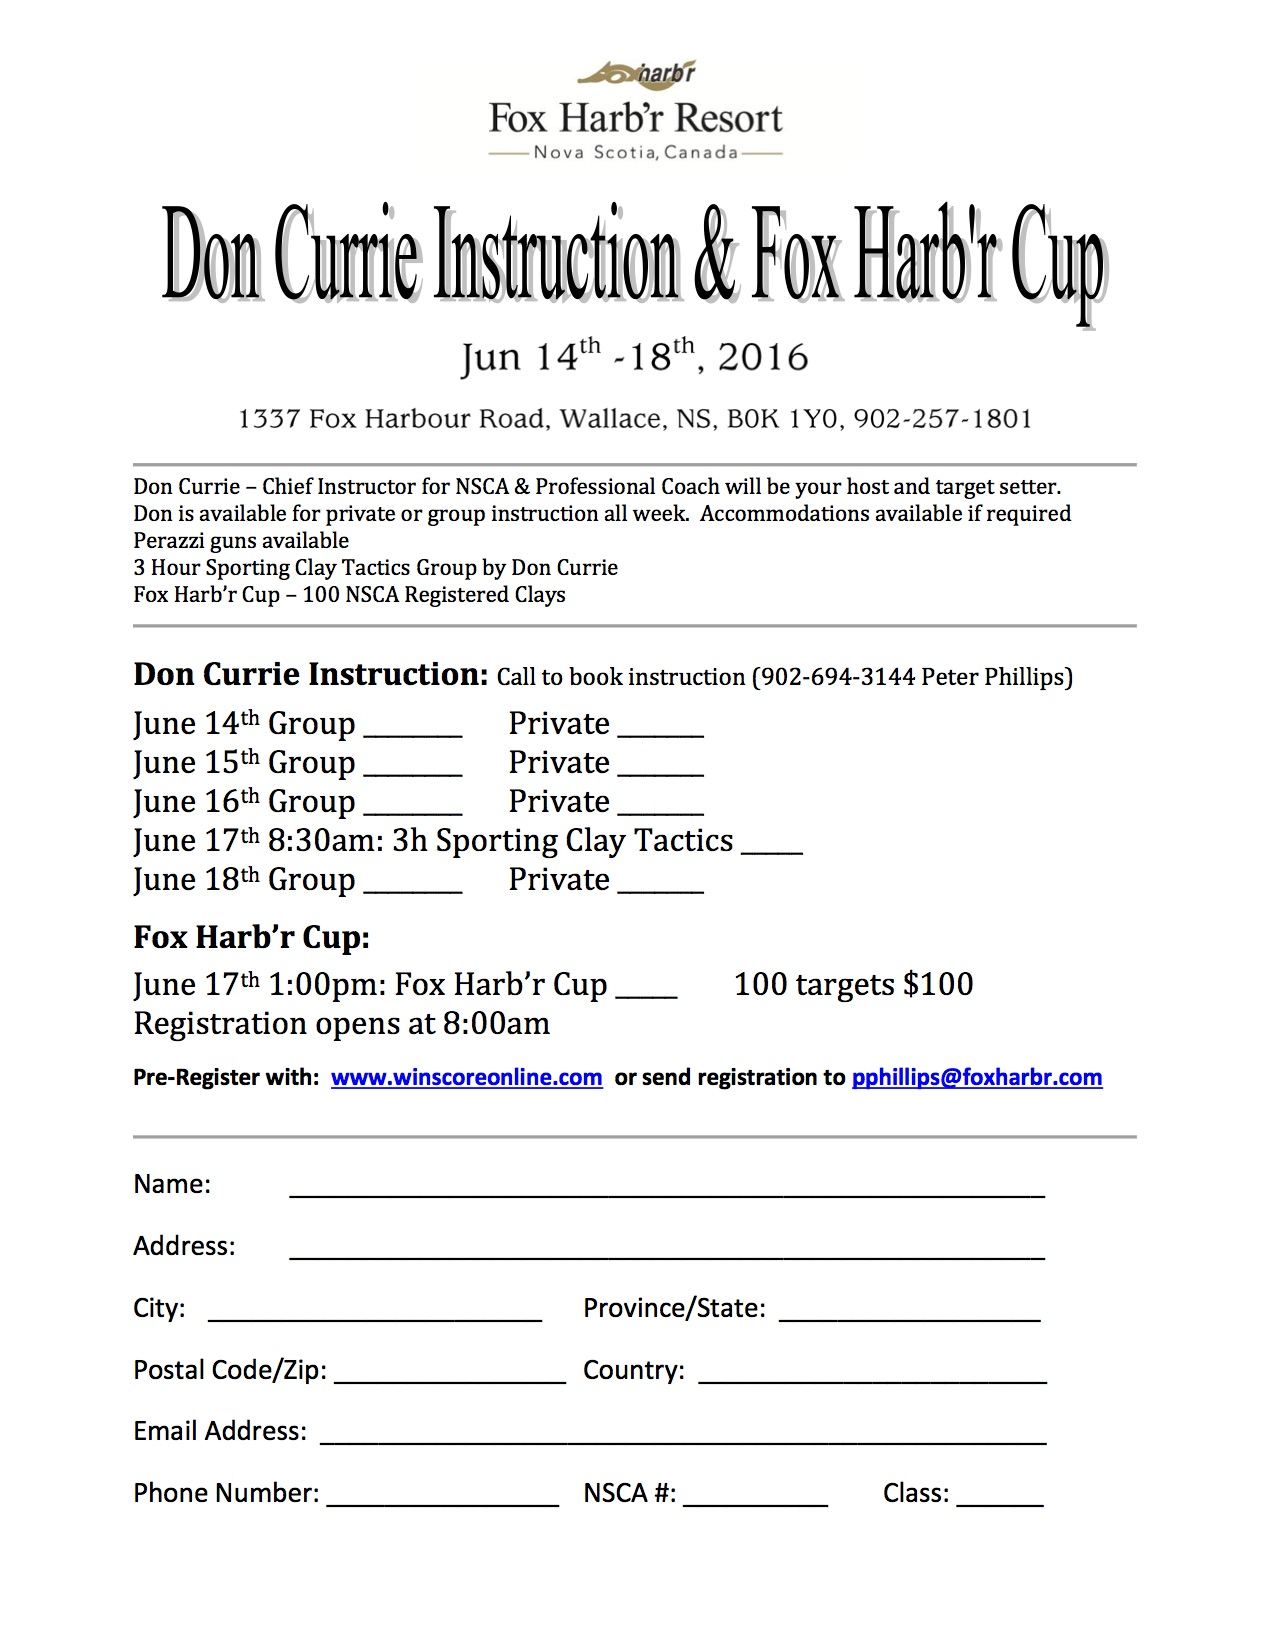 Don Currie & Fox Harb'r Cup Form